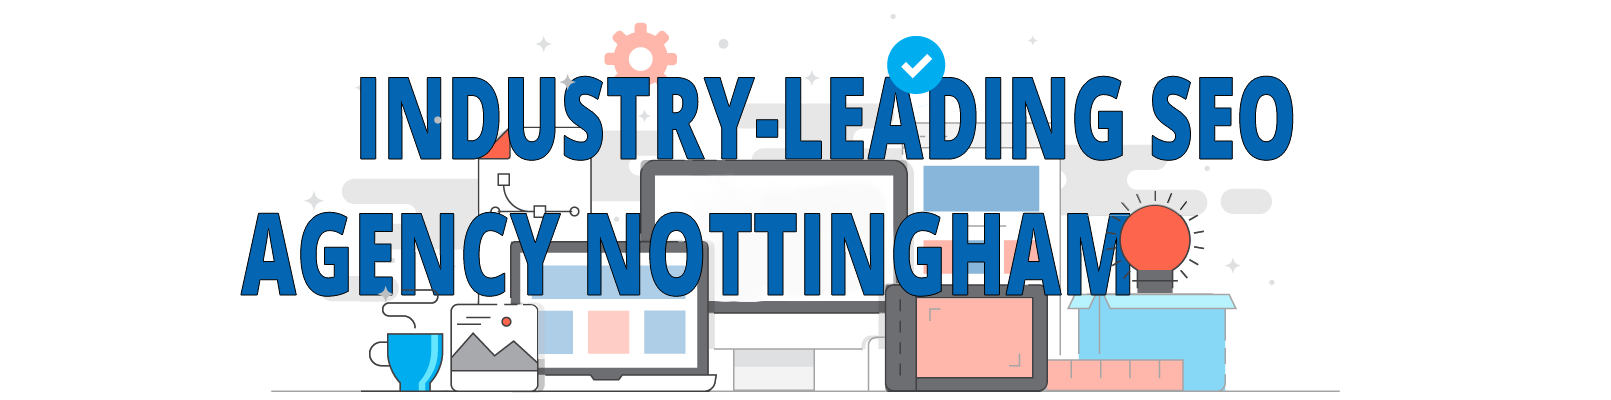 Industry-leading SEO Agency Nottingham